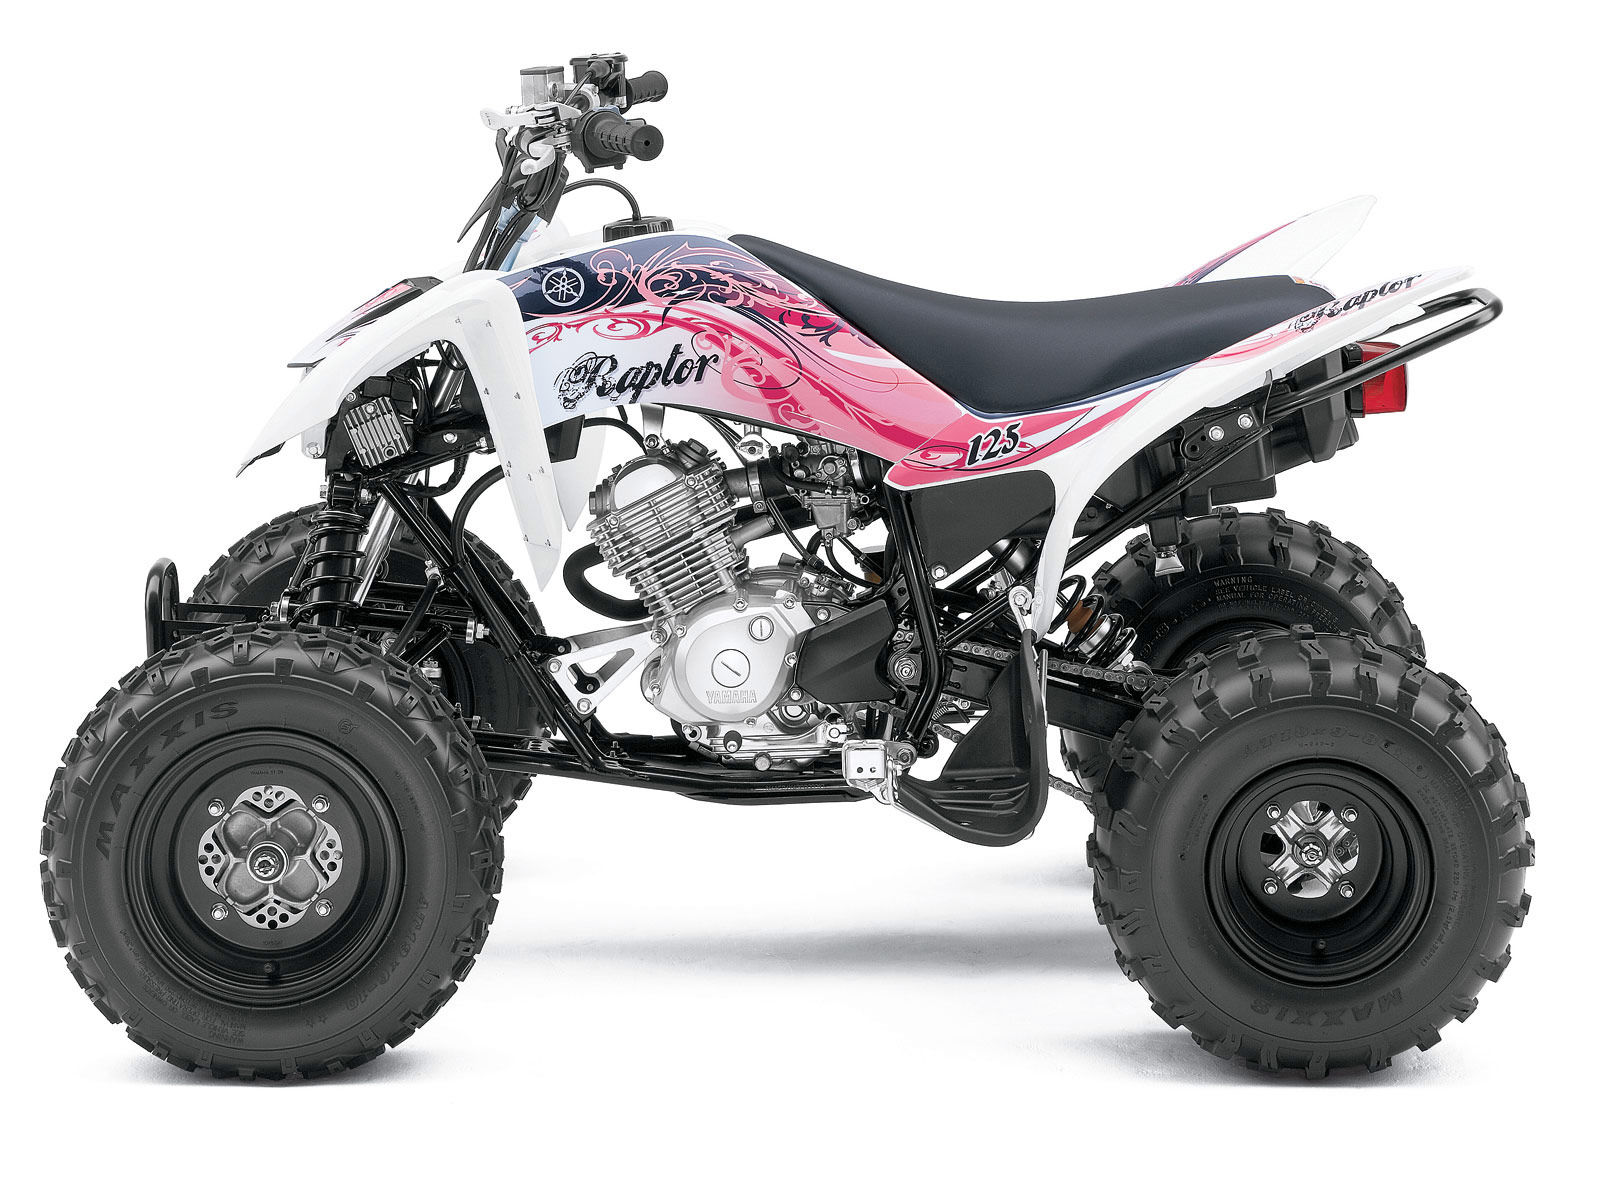 ATV Wallpapers 2011 YAMAHA Raptor 125 specifications